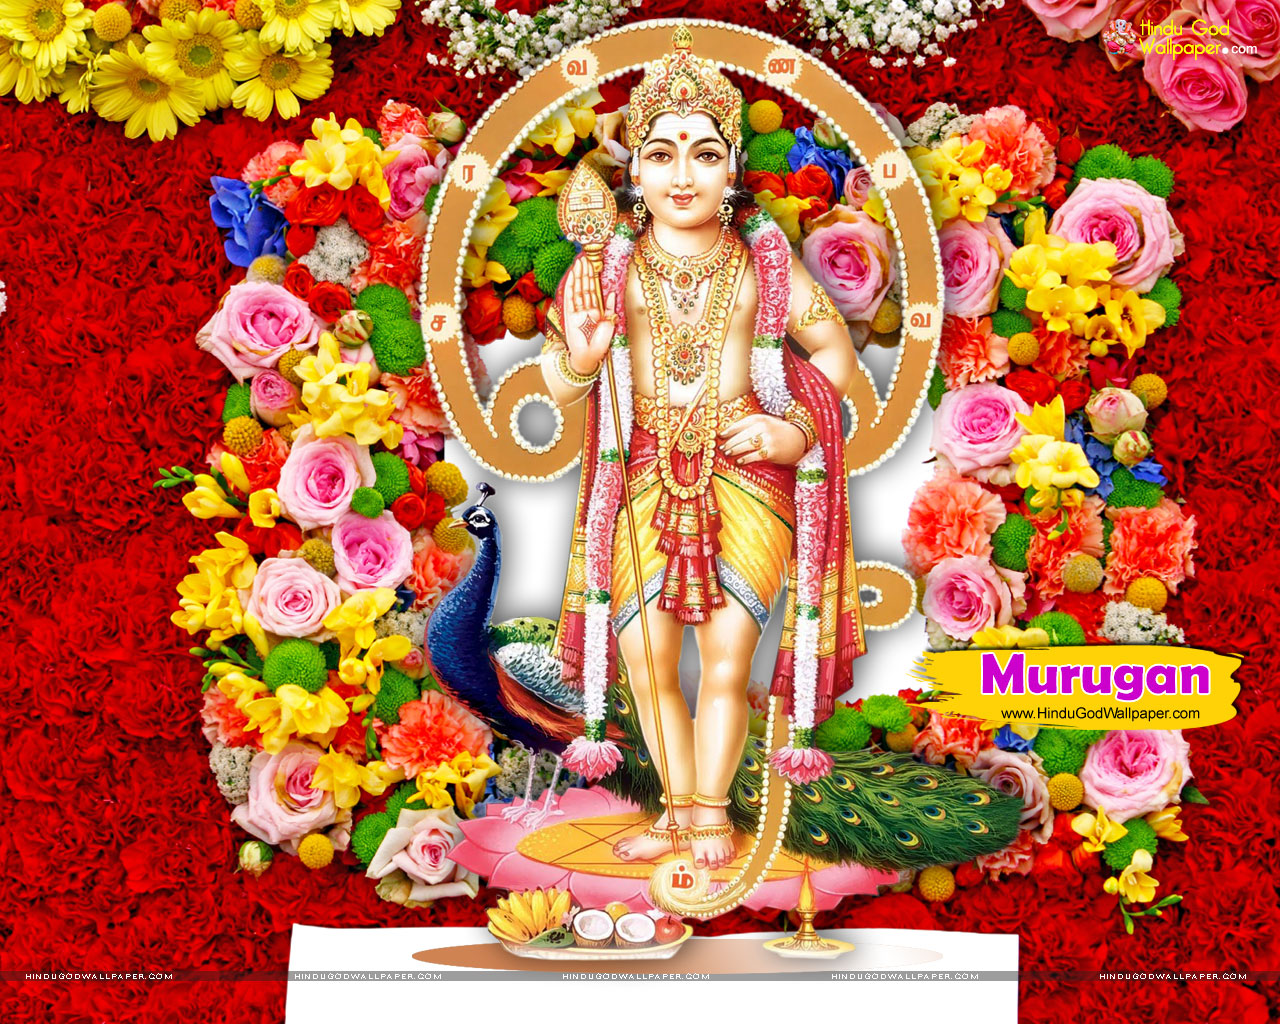 Lord murugan live wallpaper free download thecheapjerseys Image collections